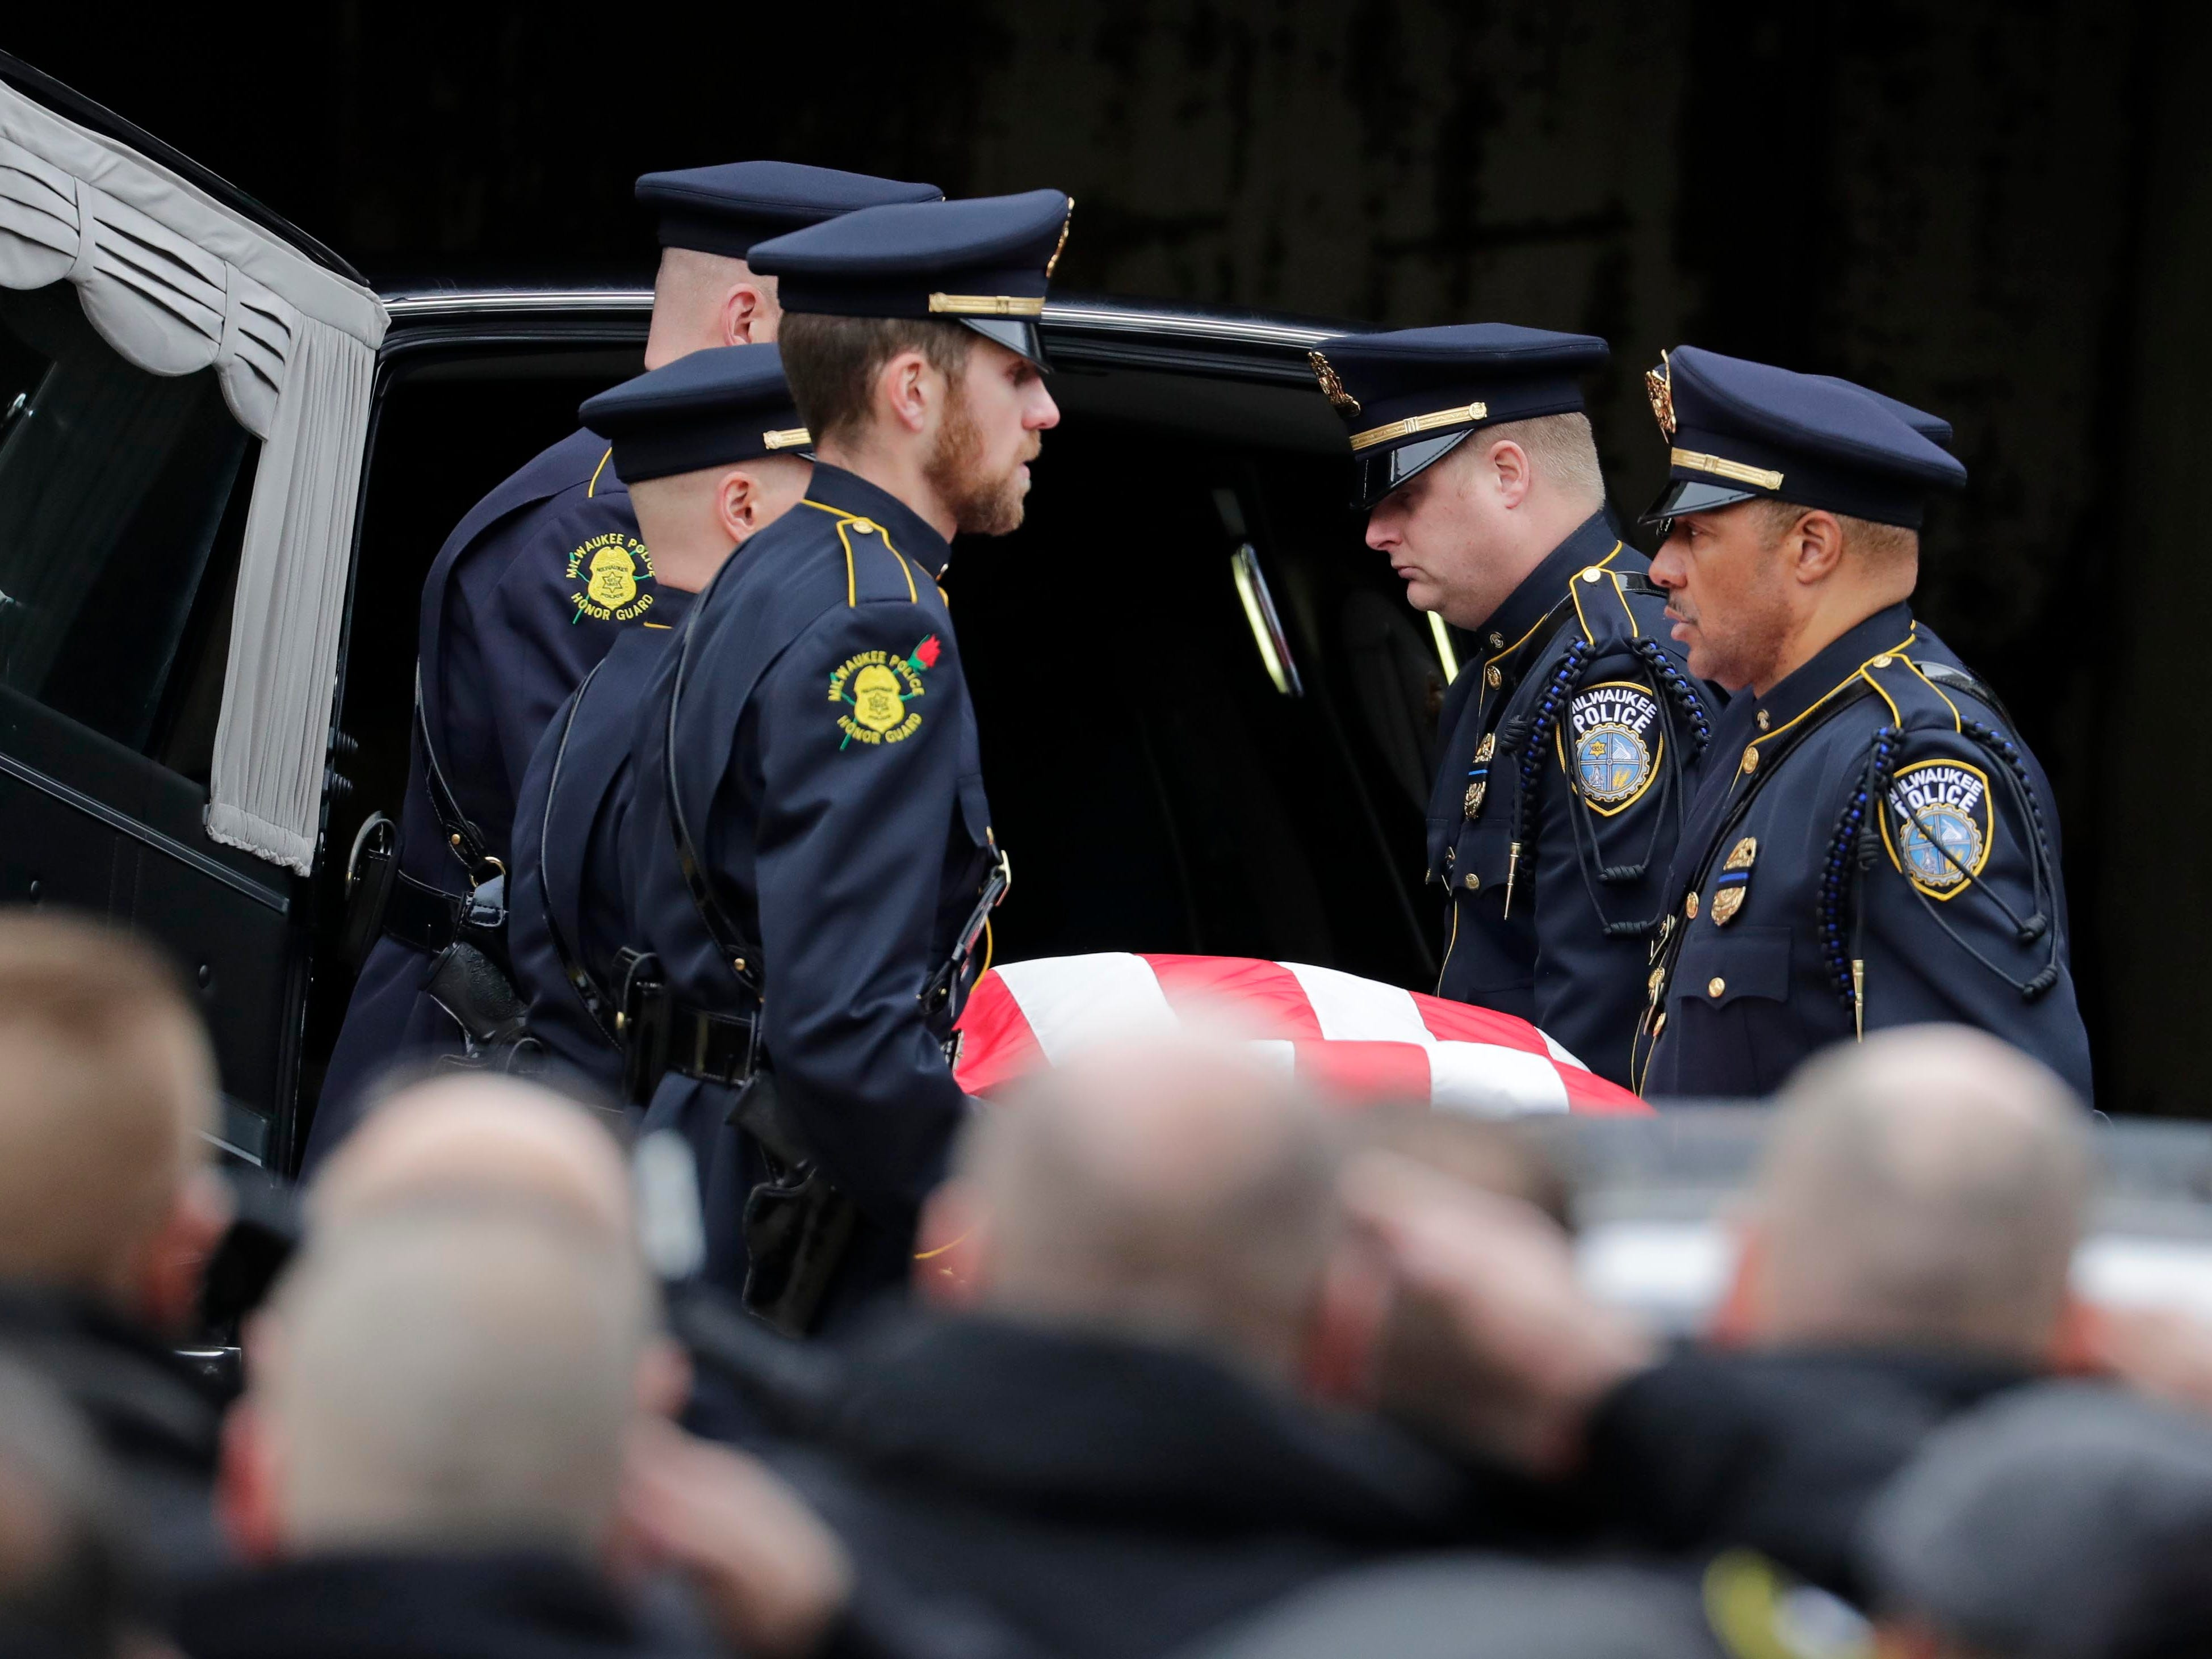 An honor guard removes the casket  carrying the body of the fallen Milwaukee police officer from the hearse after it arrived at the county medical examiner's office on Wednesday.